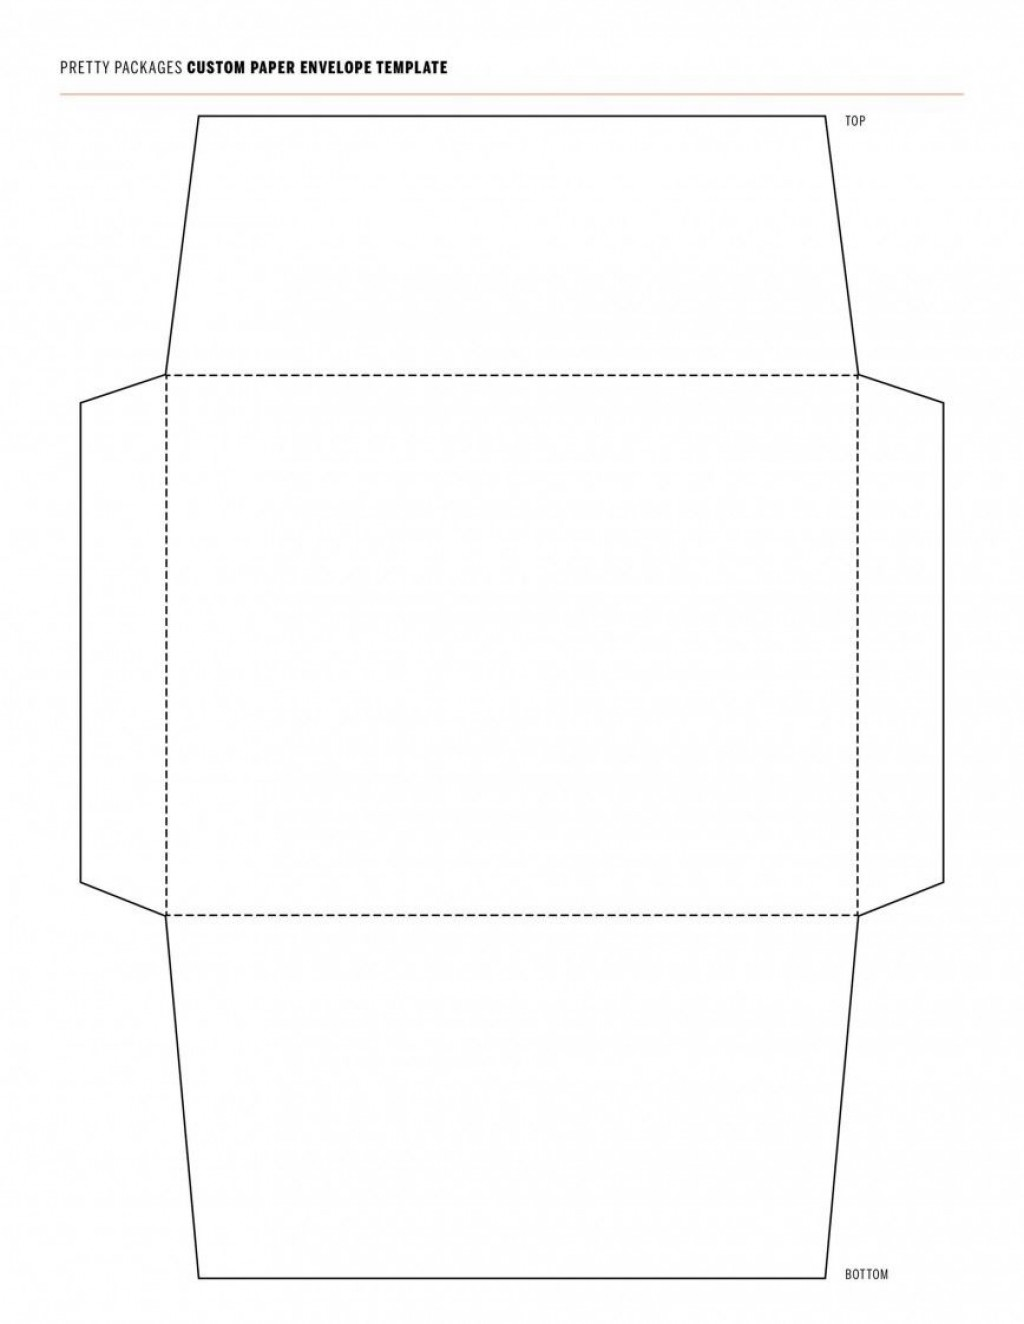 000 Surprising 10 Envelope Template Word Concept  Size Microsoft #10 Double WindowLarge